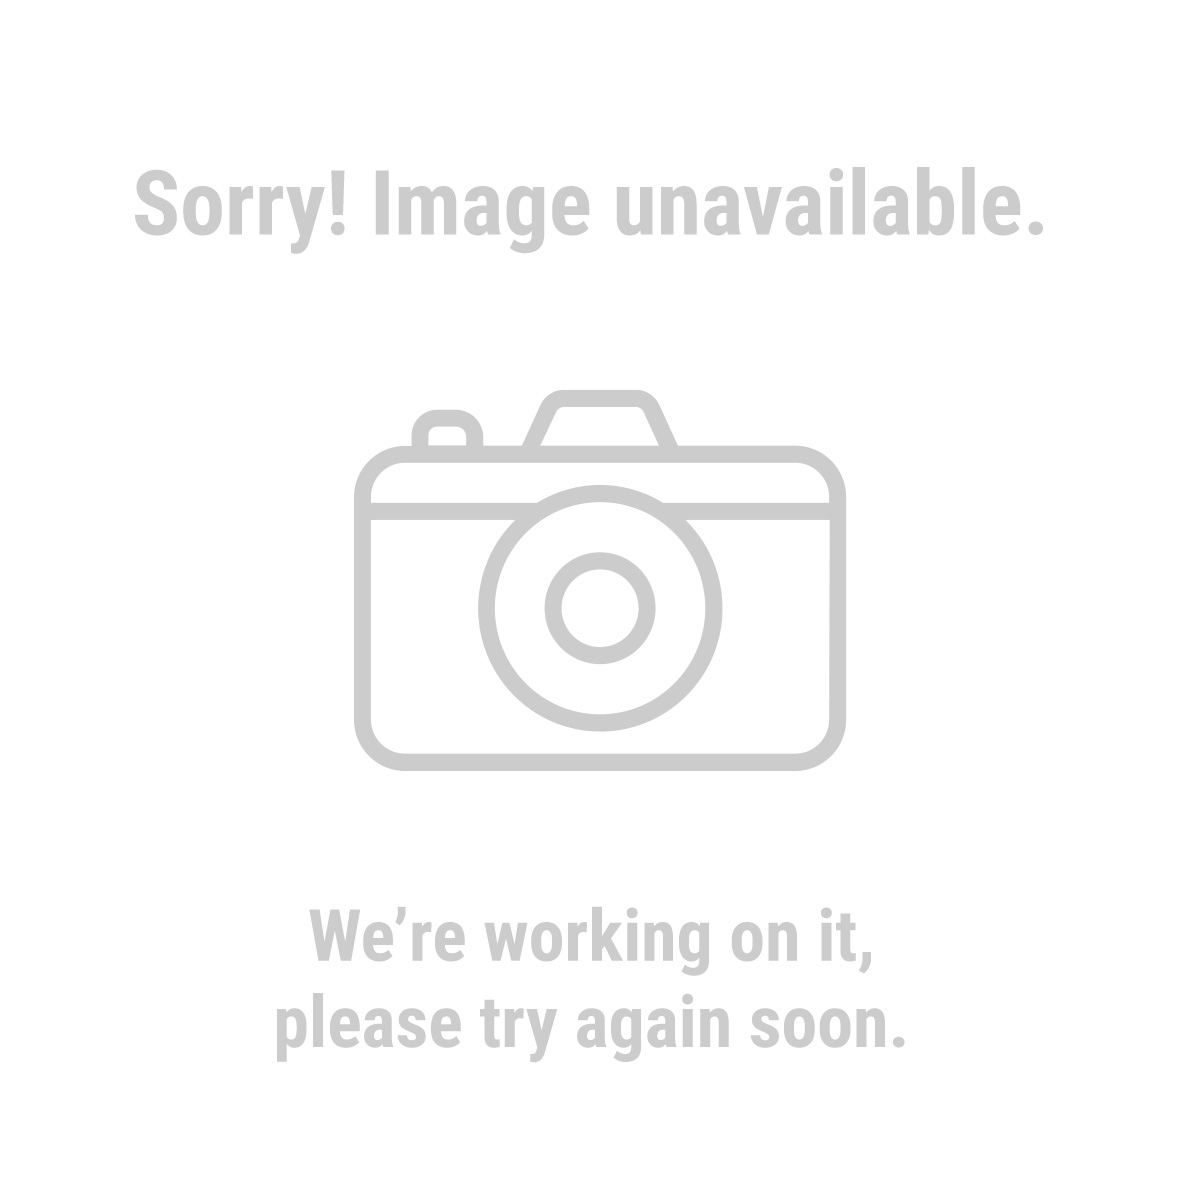 hight resolution of pacific hydrostar 98444 4 hp 2000 psi gas pressure washer with wheels